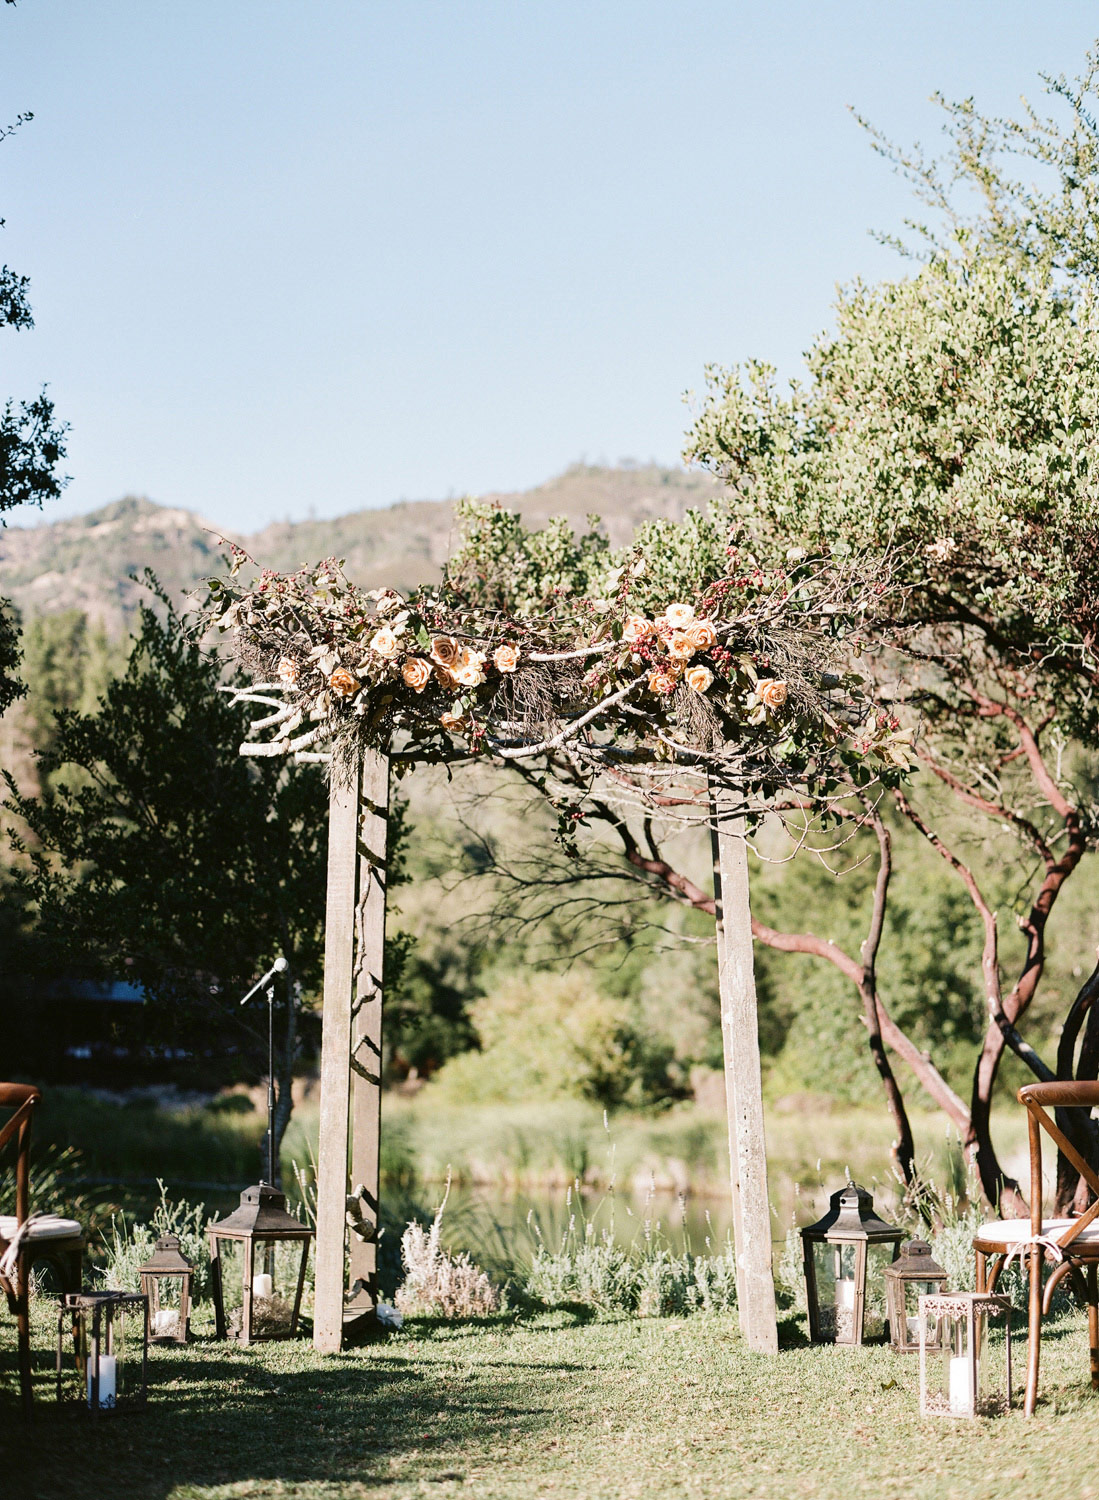 sylviegil-0180-sg-burgundy-calistoga-chocolate-fall-fcolors-gil-huppah-napa-outdoors-porsche-ranch-red-sylvie-wedding